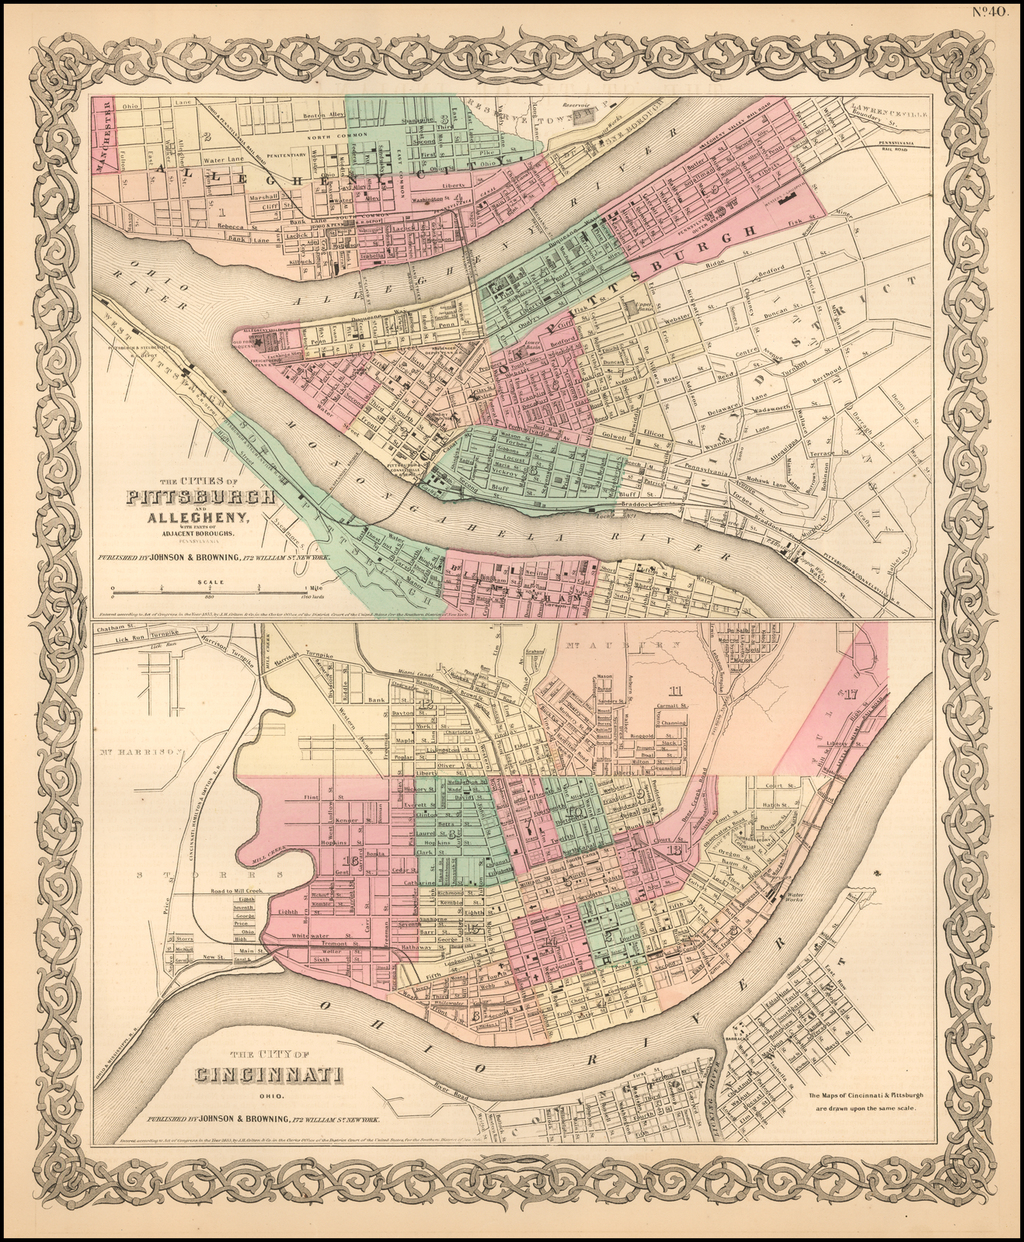 The Cities of Pittsburgh and Allegheny with Parts of Adjacent Boroughs [with] The City of Cincinnati Ohio. By Joseph Hutchins Colton